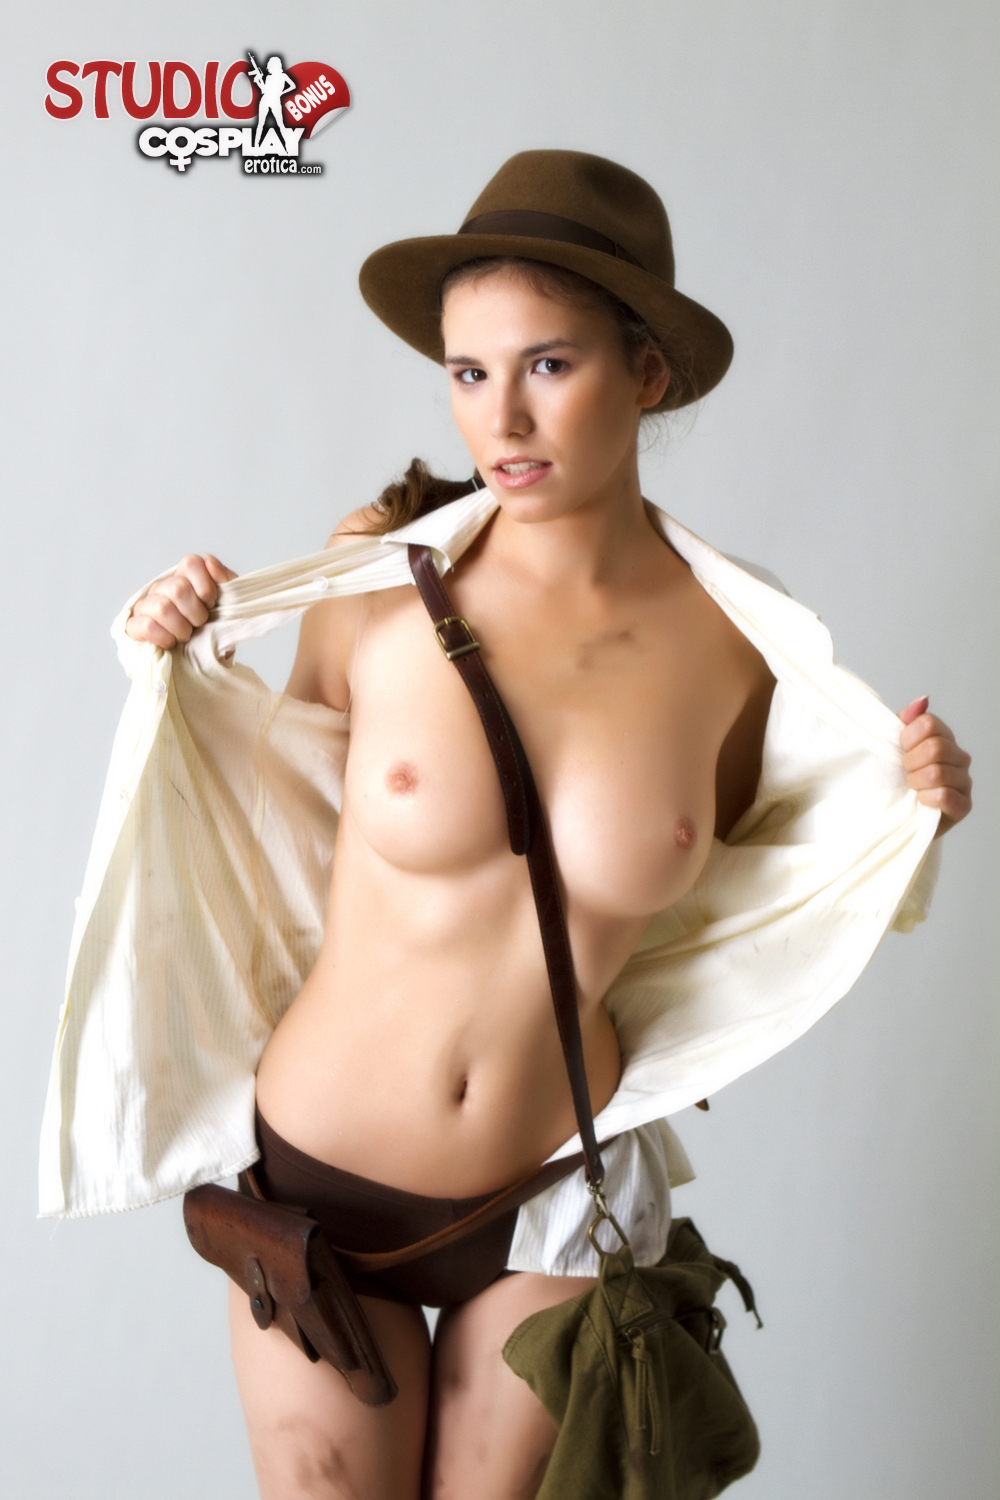 Simply excellent Cosplay porn sex adult photo useful